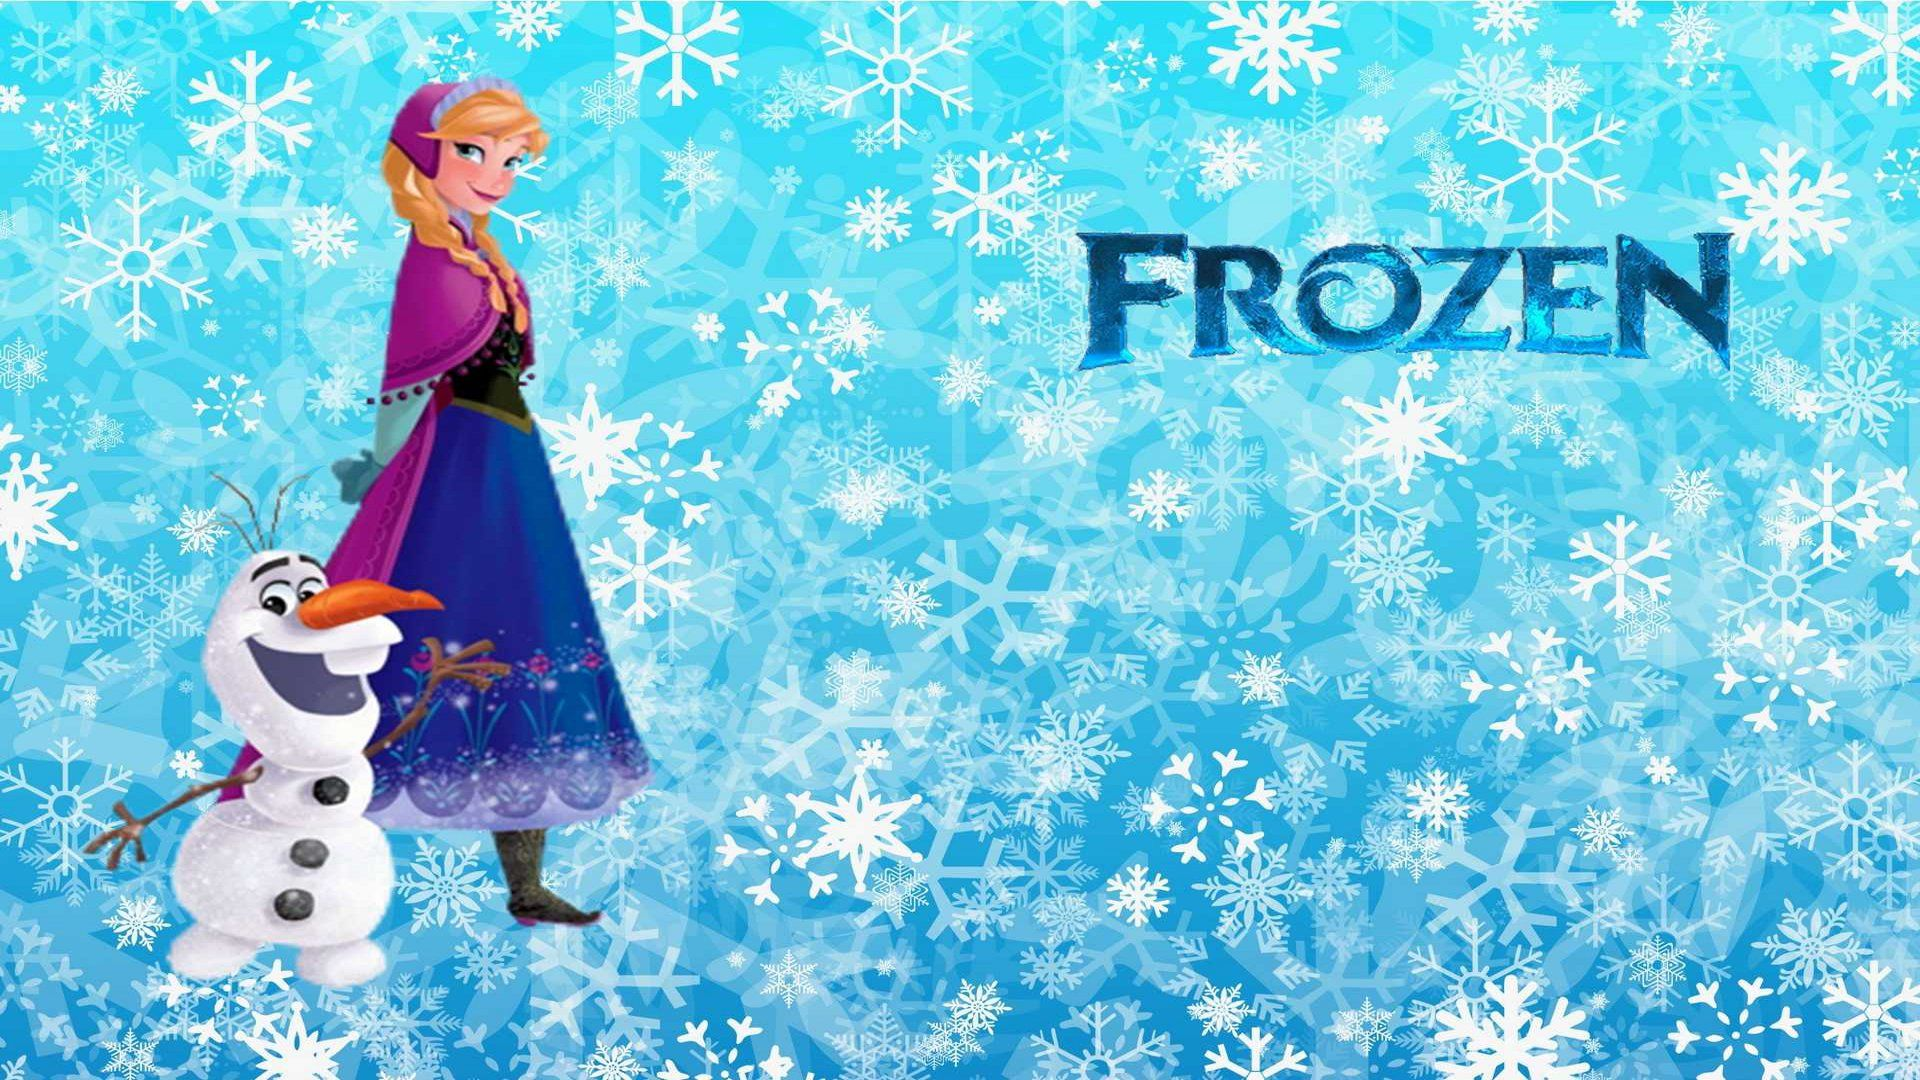 1920x1080 Frozen Anna and Olaf Wallpaper HD Desktop Wallpaper, Instagram photo ...